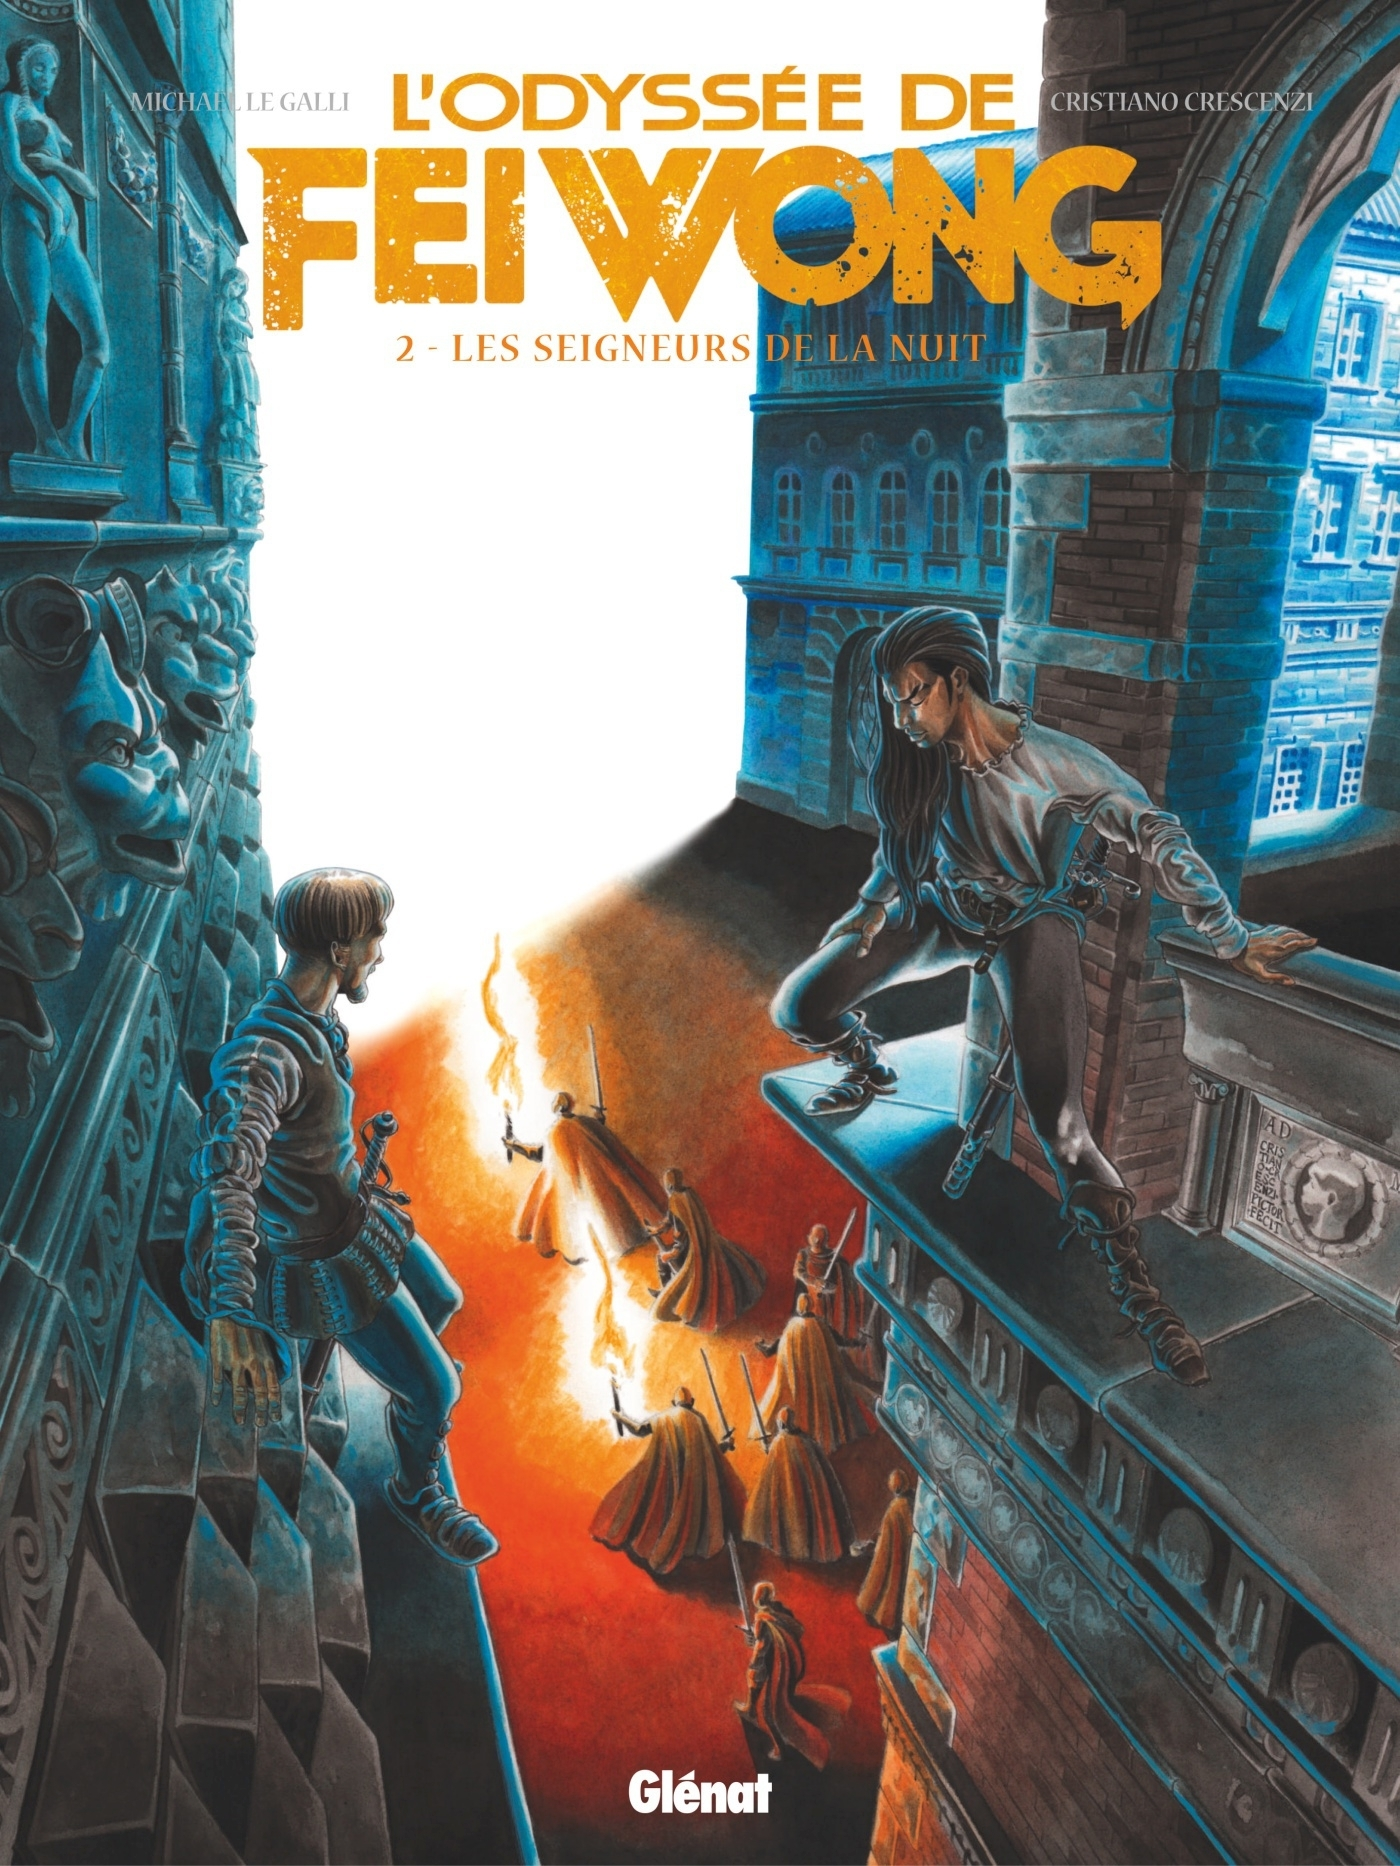 L'ODYSSEE DE FEI WONG - TOME 02